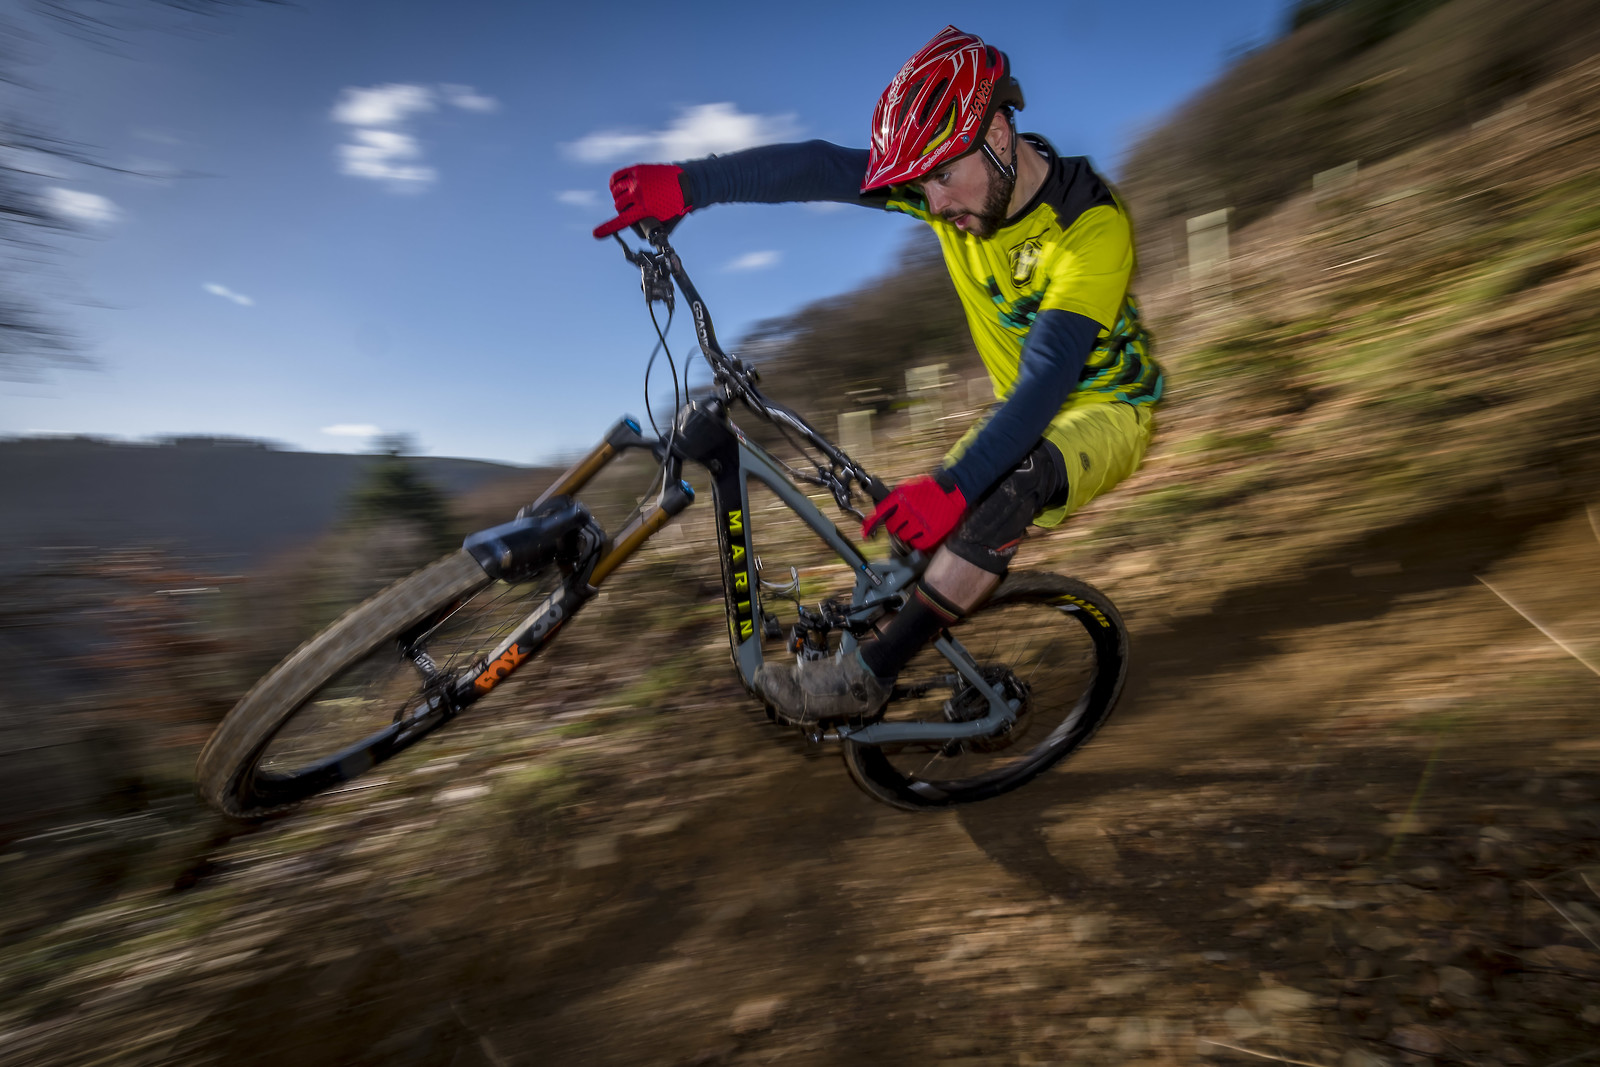 DSC0277 - robbarkerimages2017 - Mountain Biking Pictures - Vital MTB